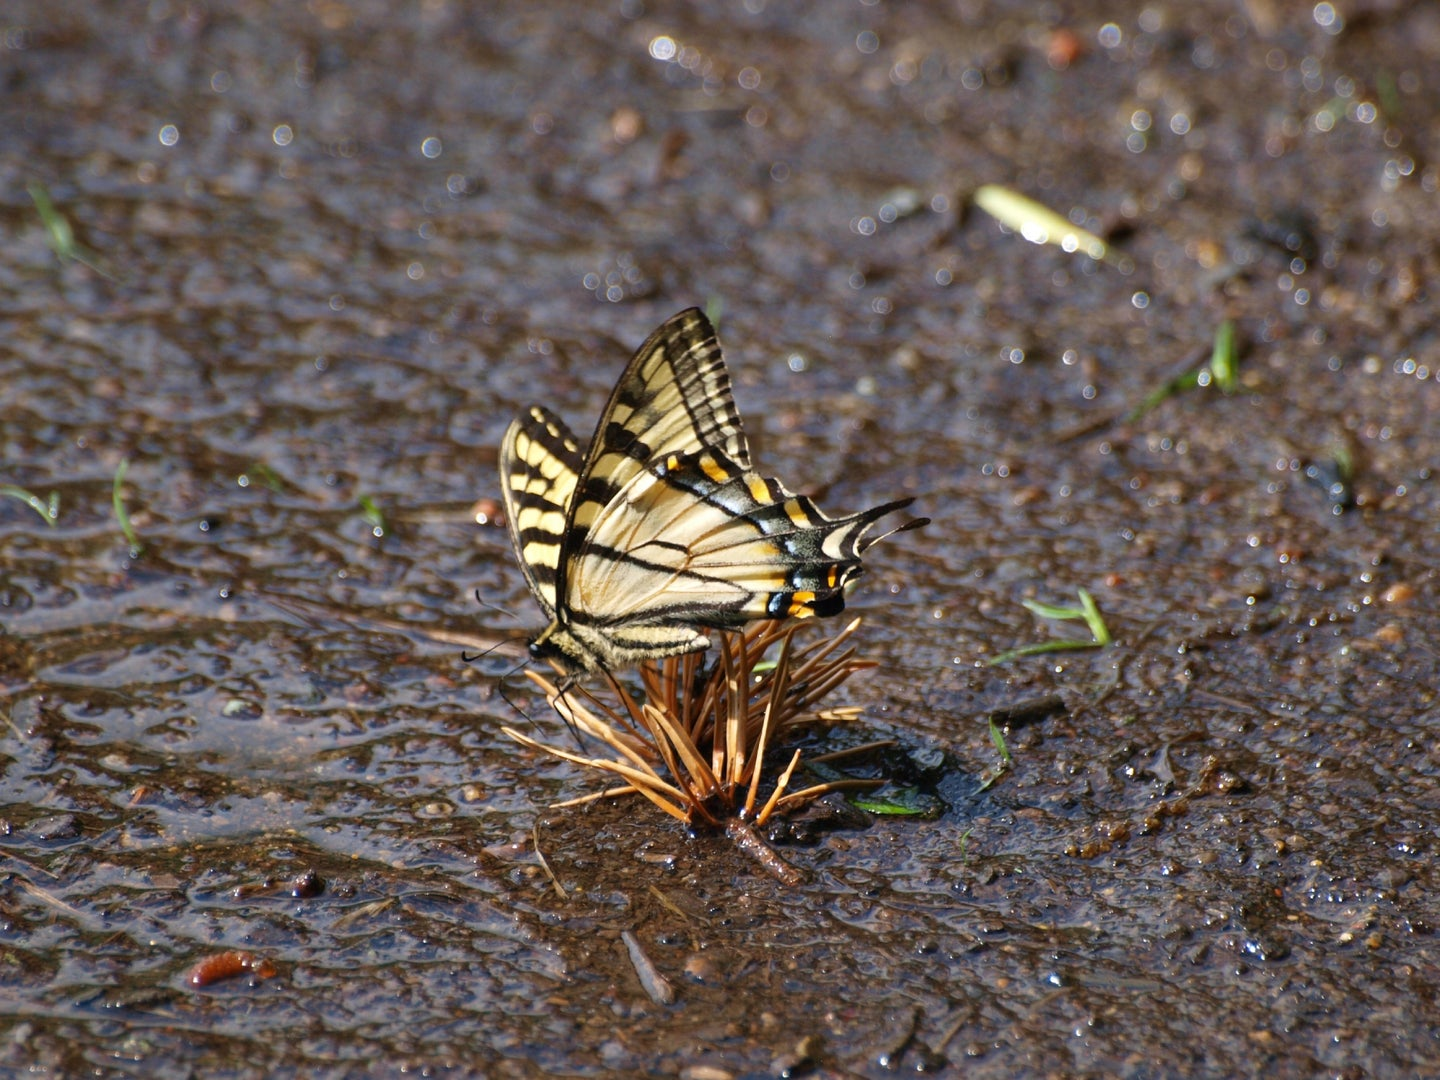 A tiger swallowtail butterfly puddling and drinking water in a muddy area.